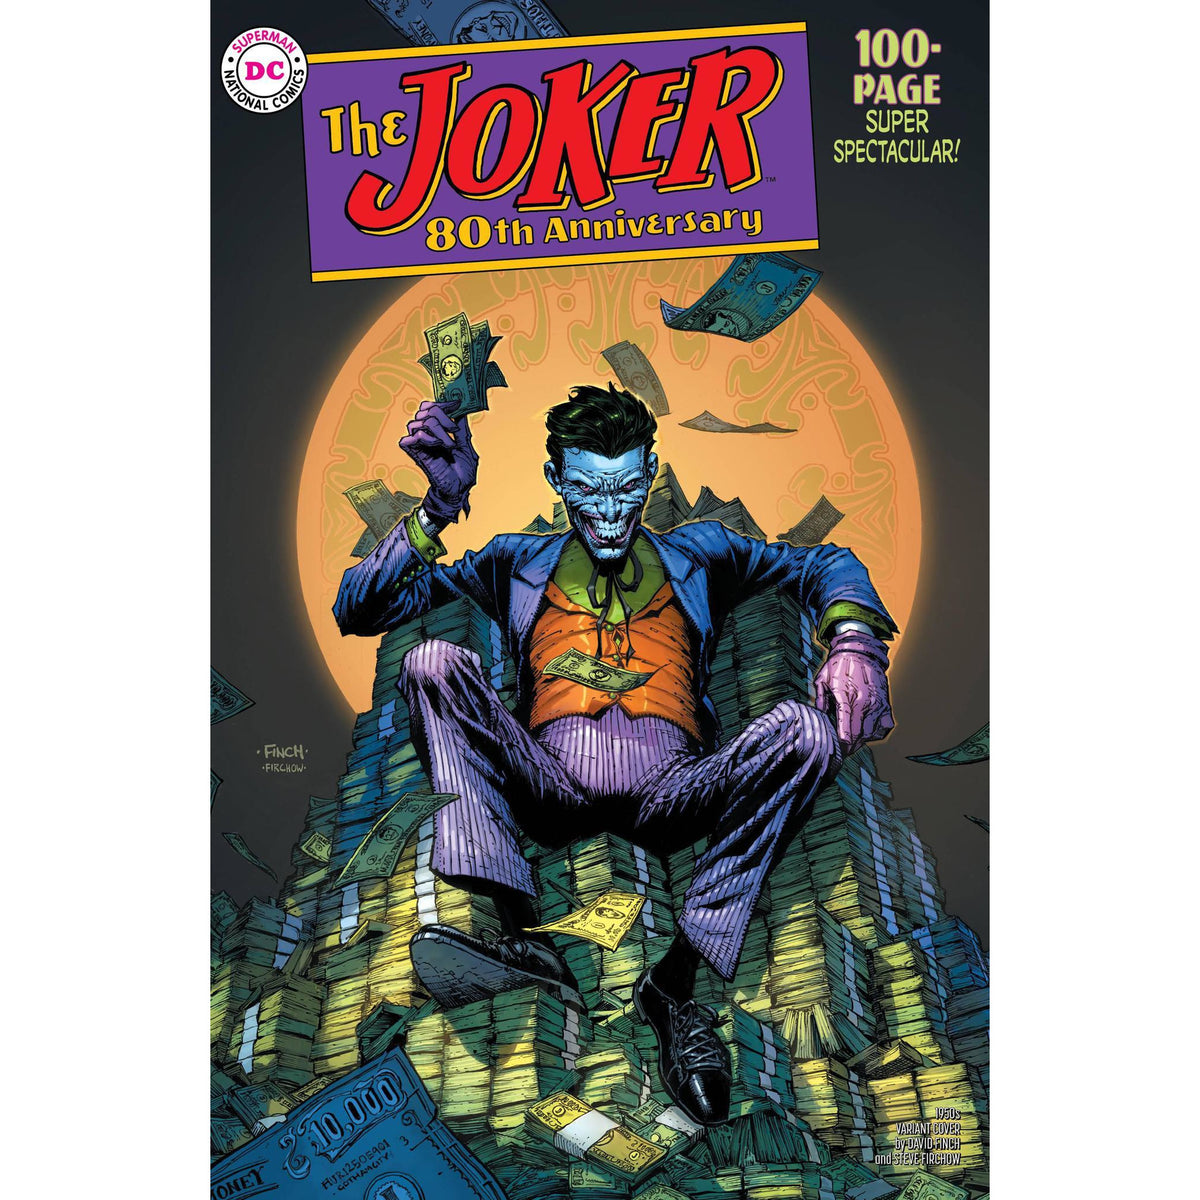 JOKER 80TH ANNIVERSARY 100 PAGE SUPER SPECTACULAR - 3 COVER SET